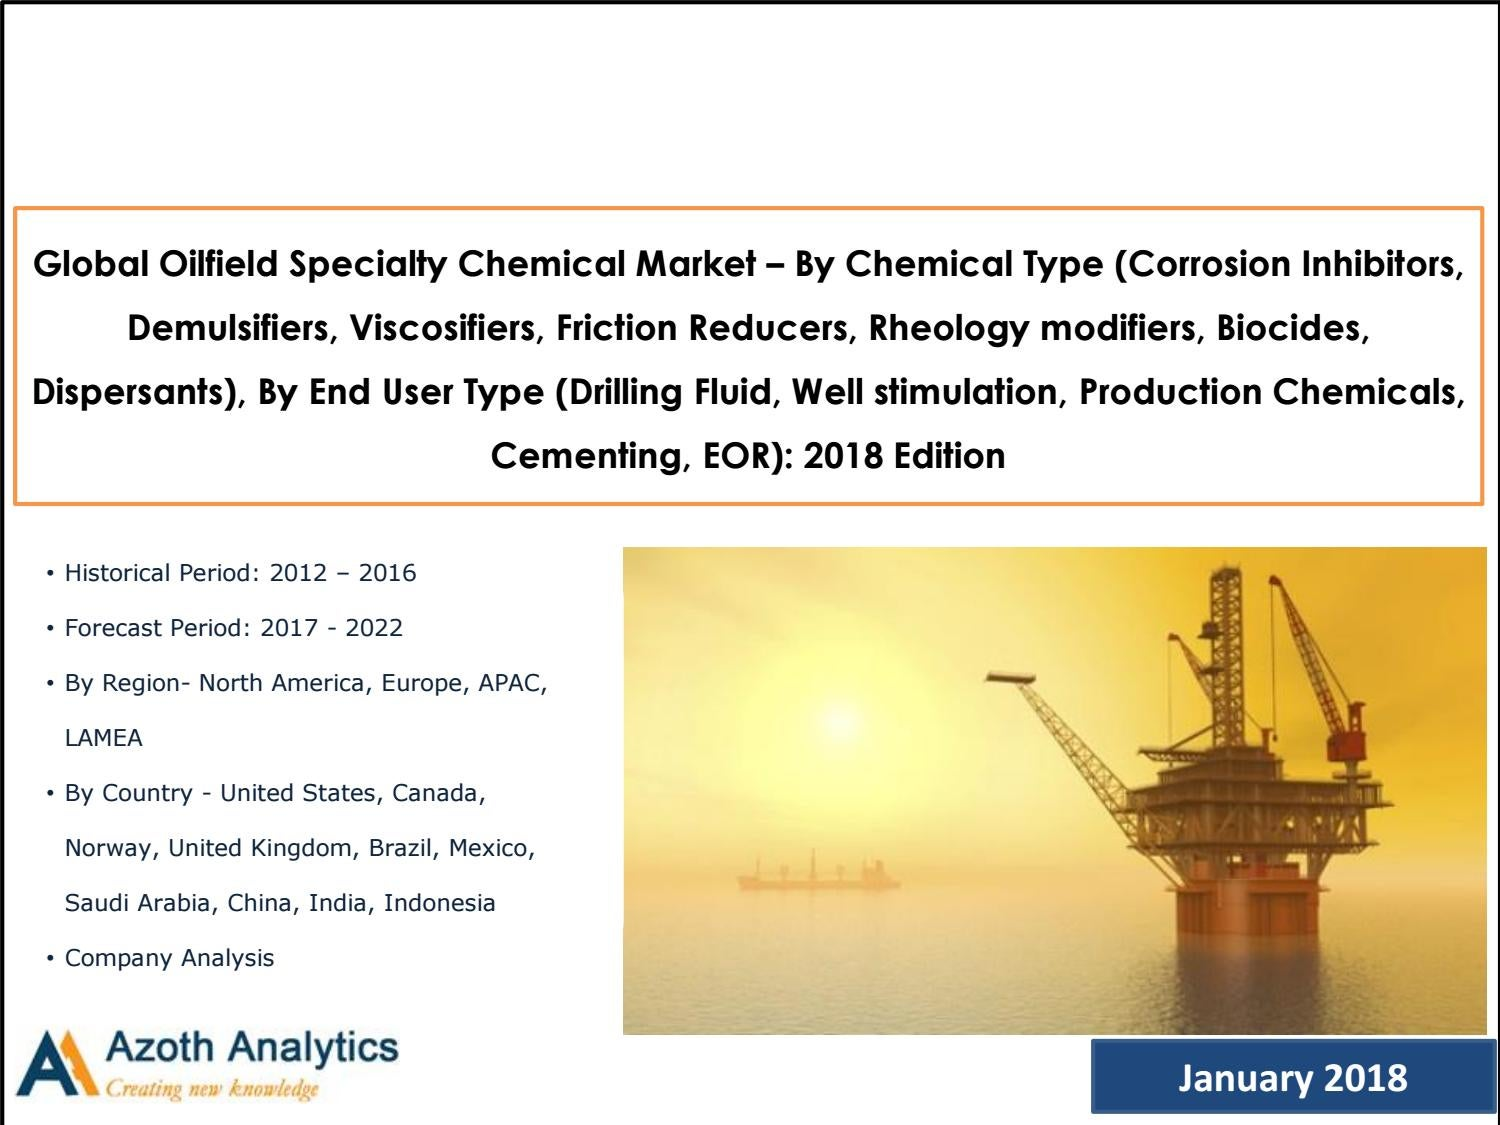 Global Oilfield Specialty Chemical Market: Forecast to 2022